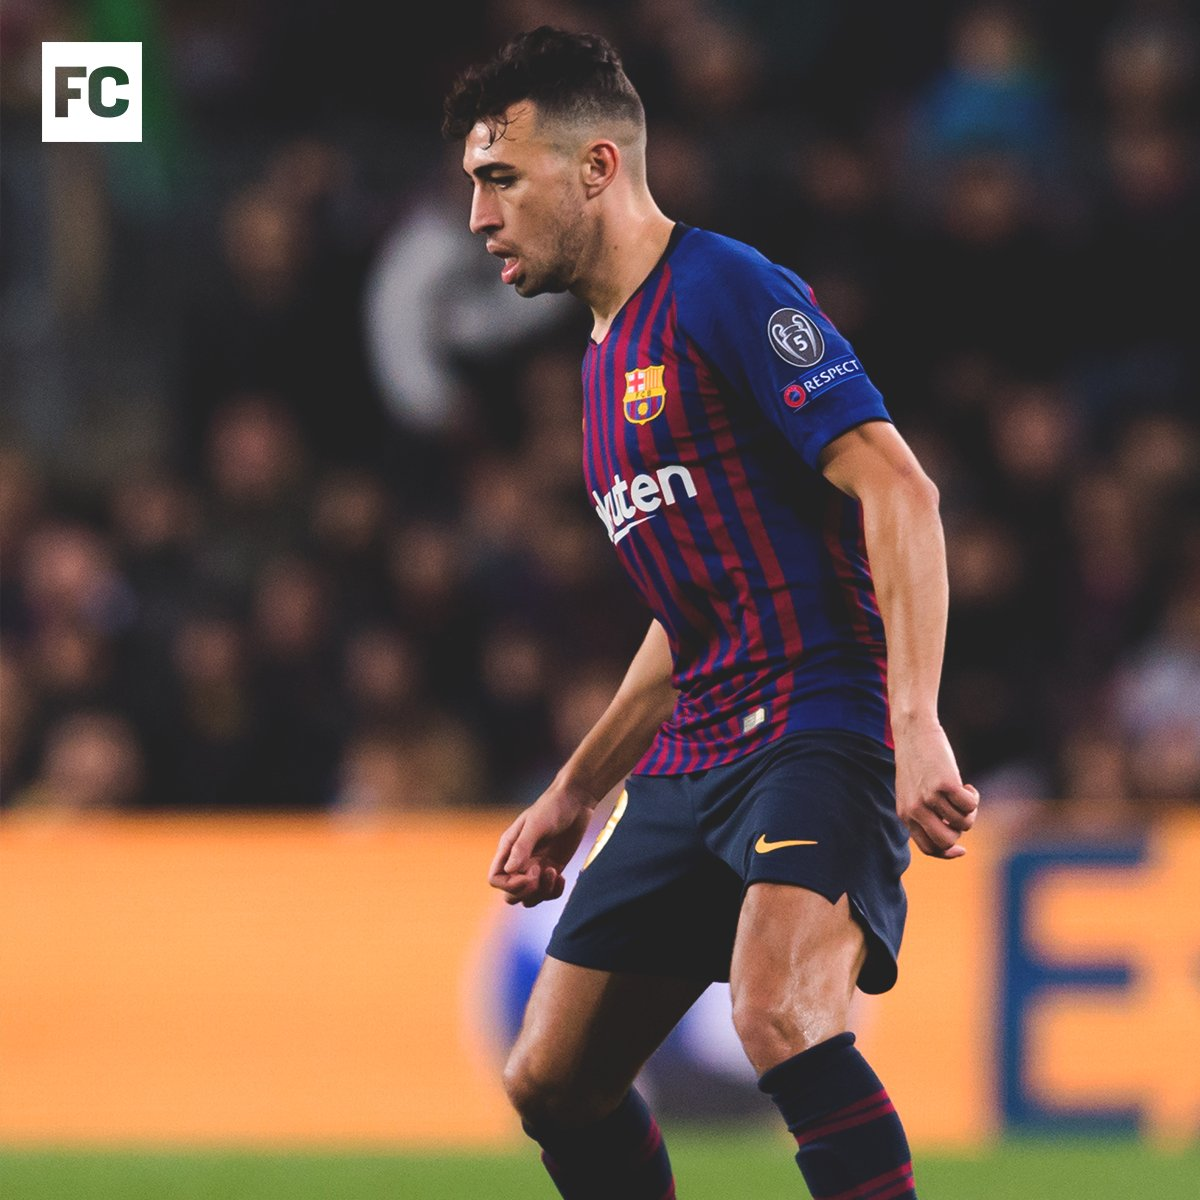 Futbol Club's photo on munir al sevilla